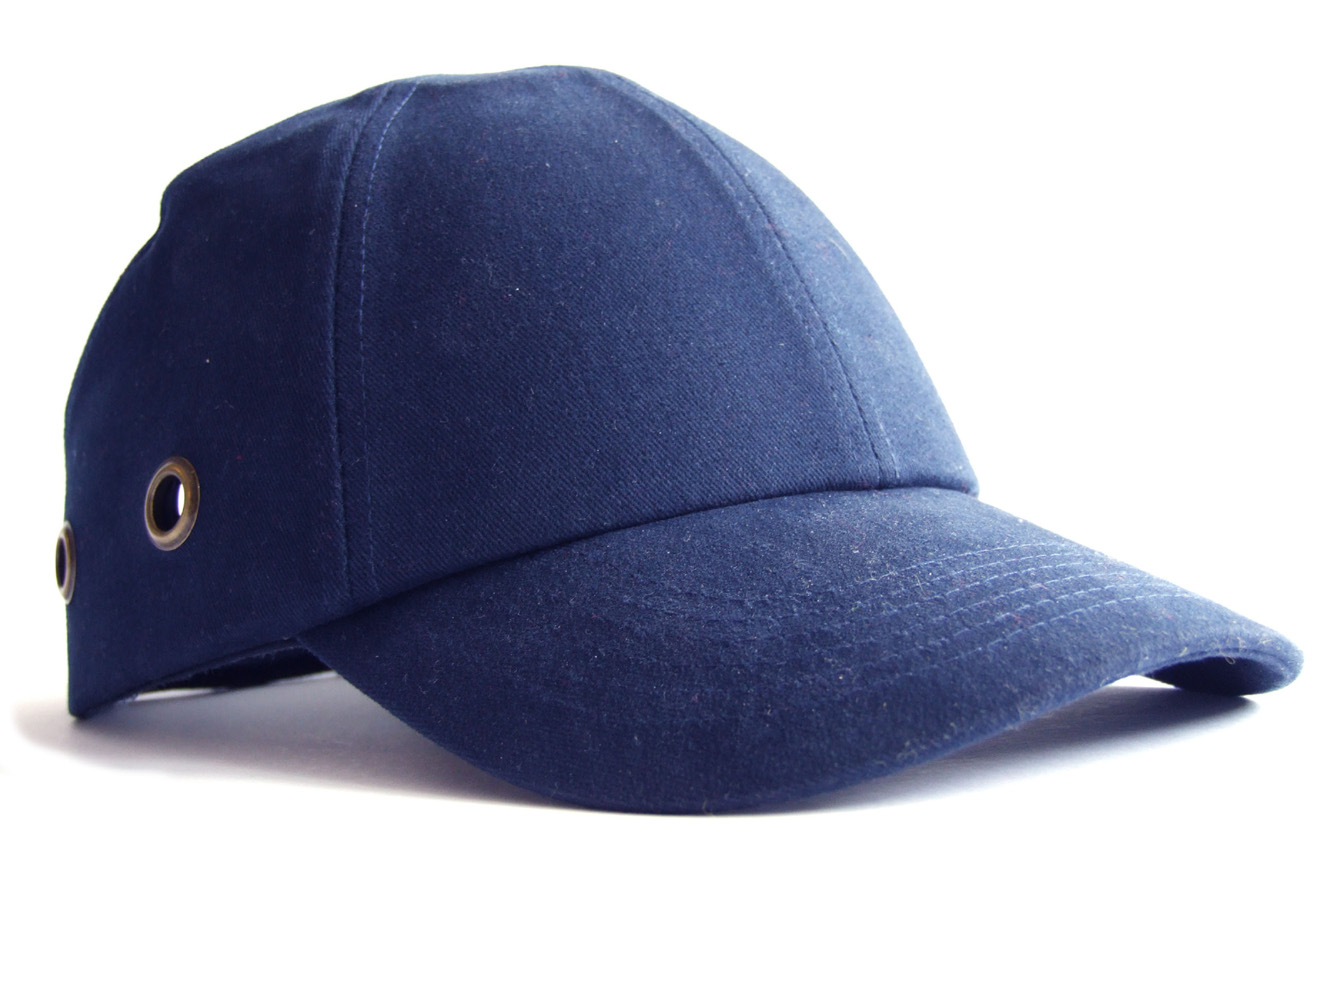 Safety Baseball Cap Navy Blue The Safety Shack